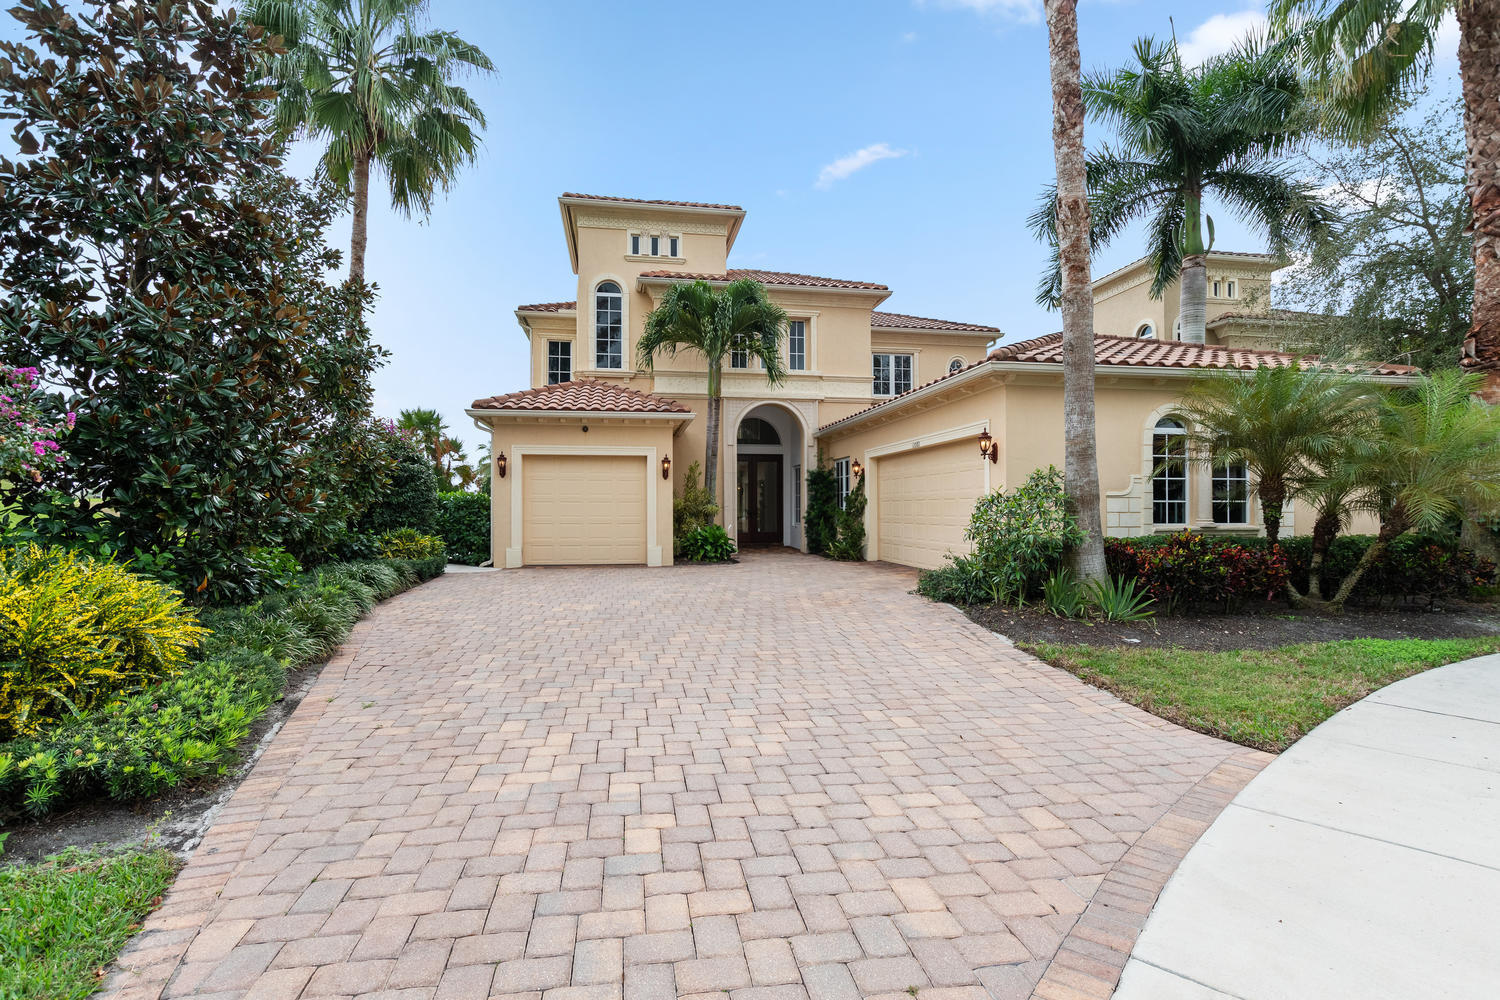 12080 Sunnydale Drive, Wellington, Florida 33414, 4 Bedrooms Bedrooms, ,4.1 BathroomsBathrooms,Single Family,For Sale,PALM BEACH POLO,Sunnydale,RX-10492563